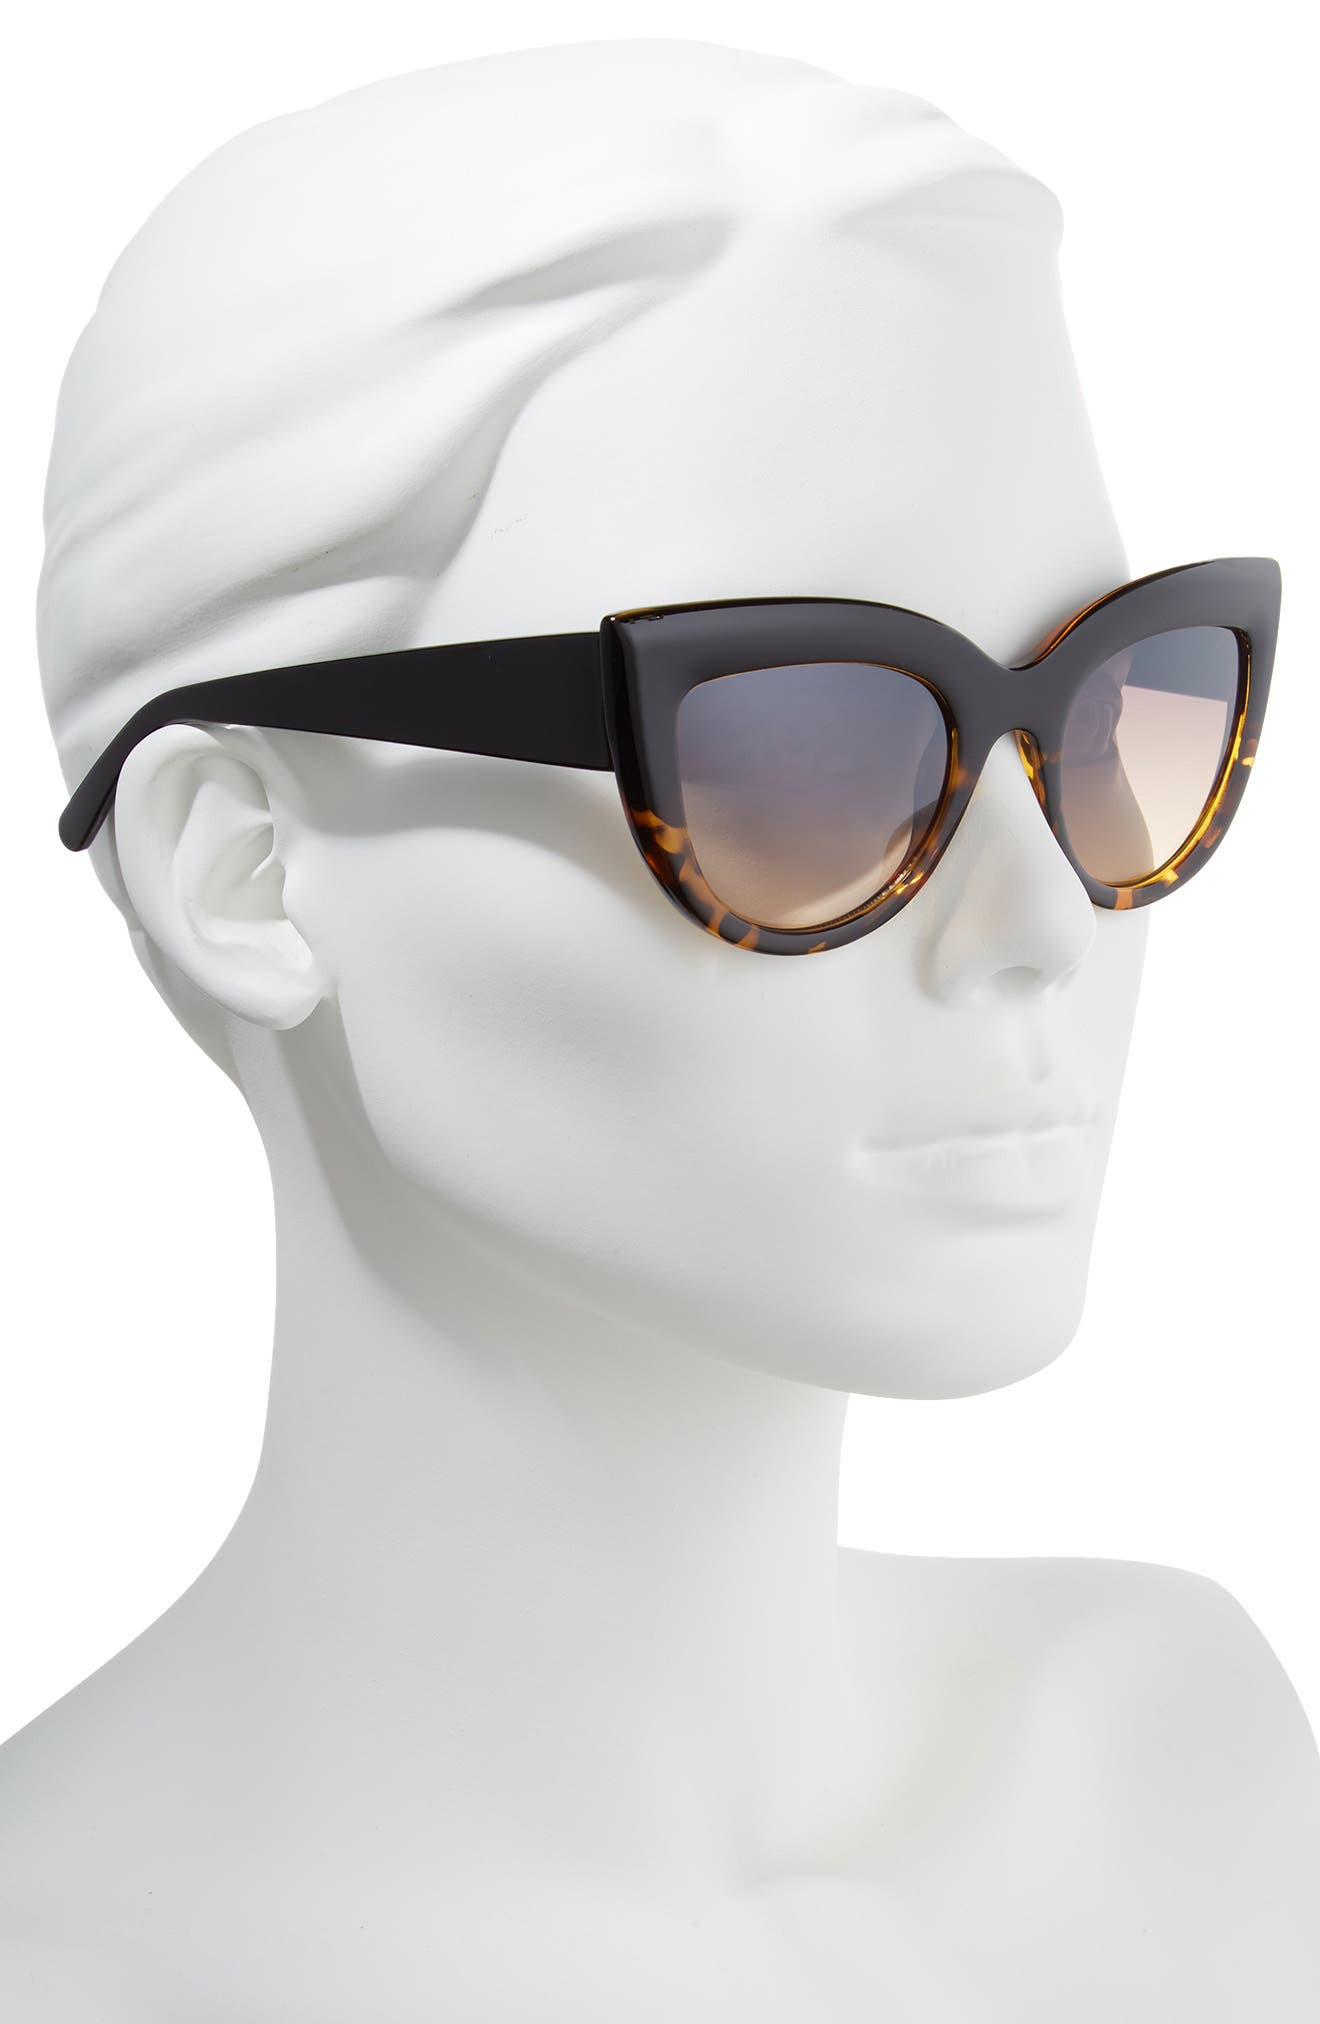 60mm Two-Tone Cat Eye Sunglasses,                             Alternate thumbnail 2, color,